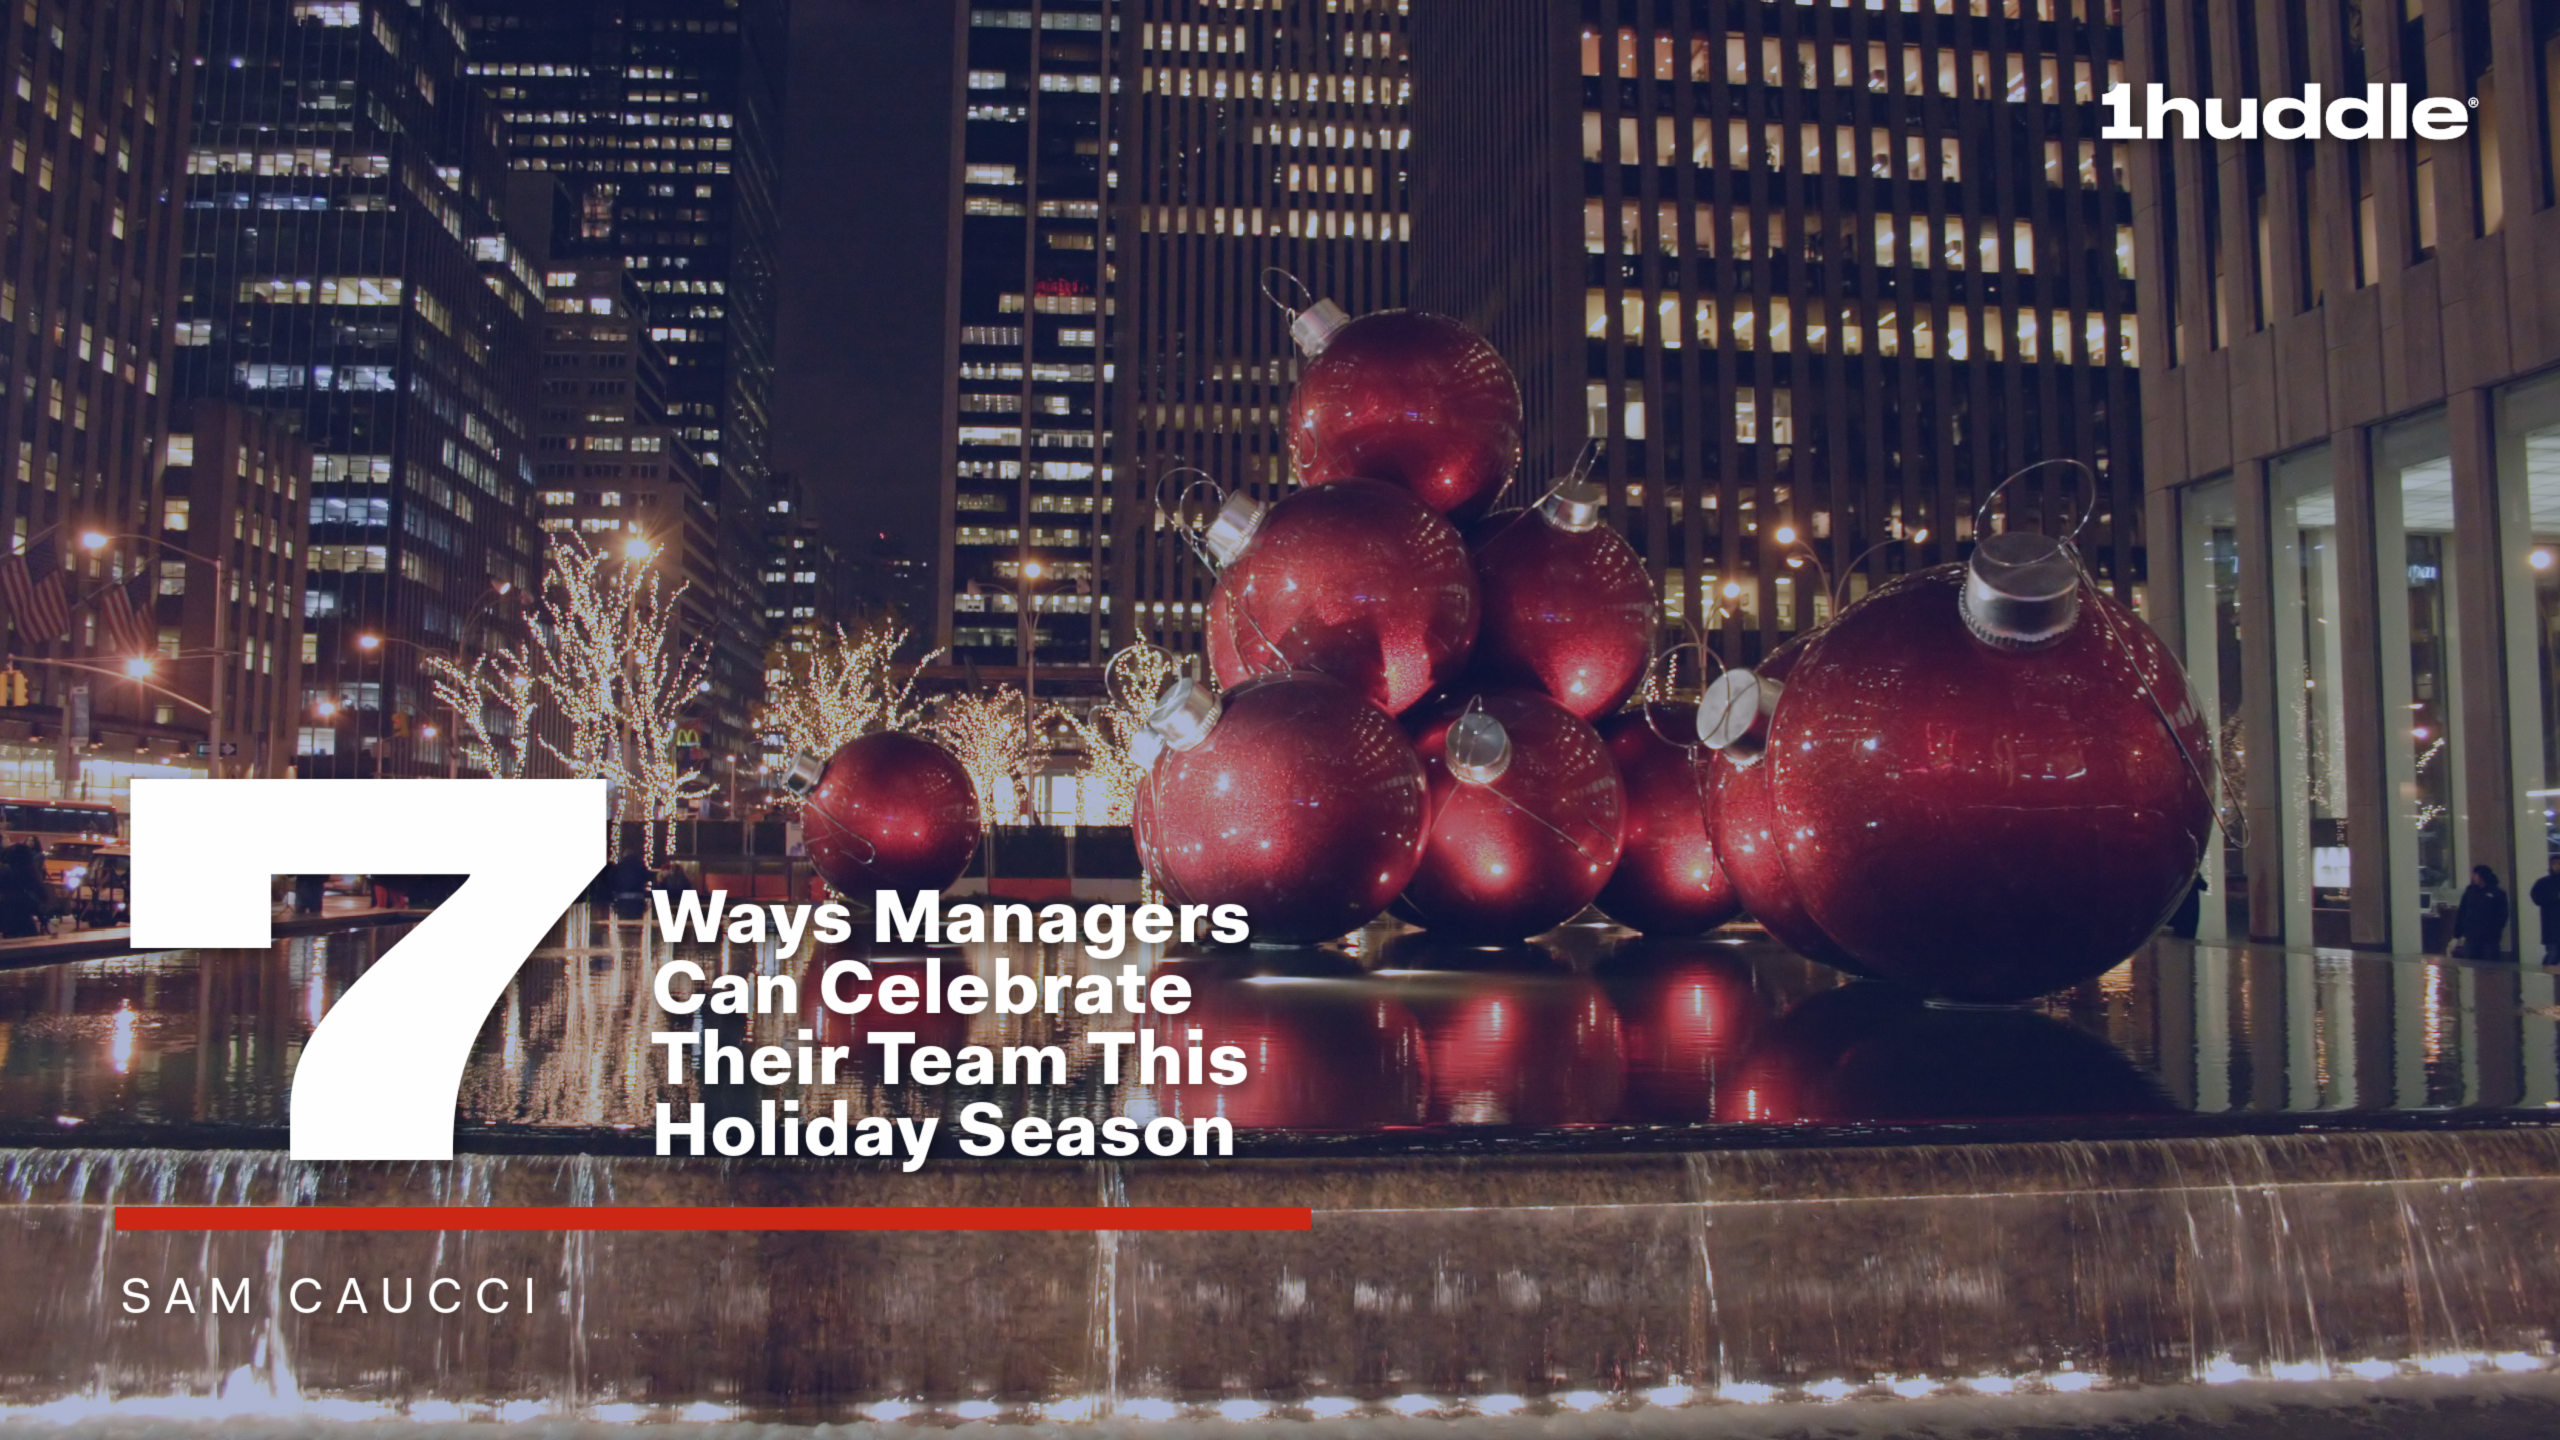 7 Ways Managers Can Celebrate Their Team This Holiday Season